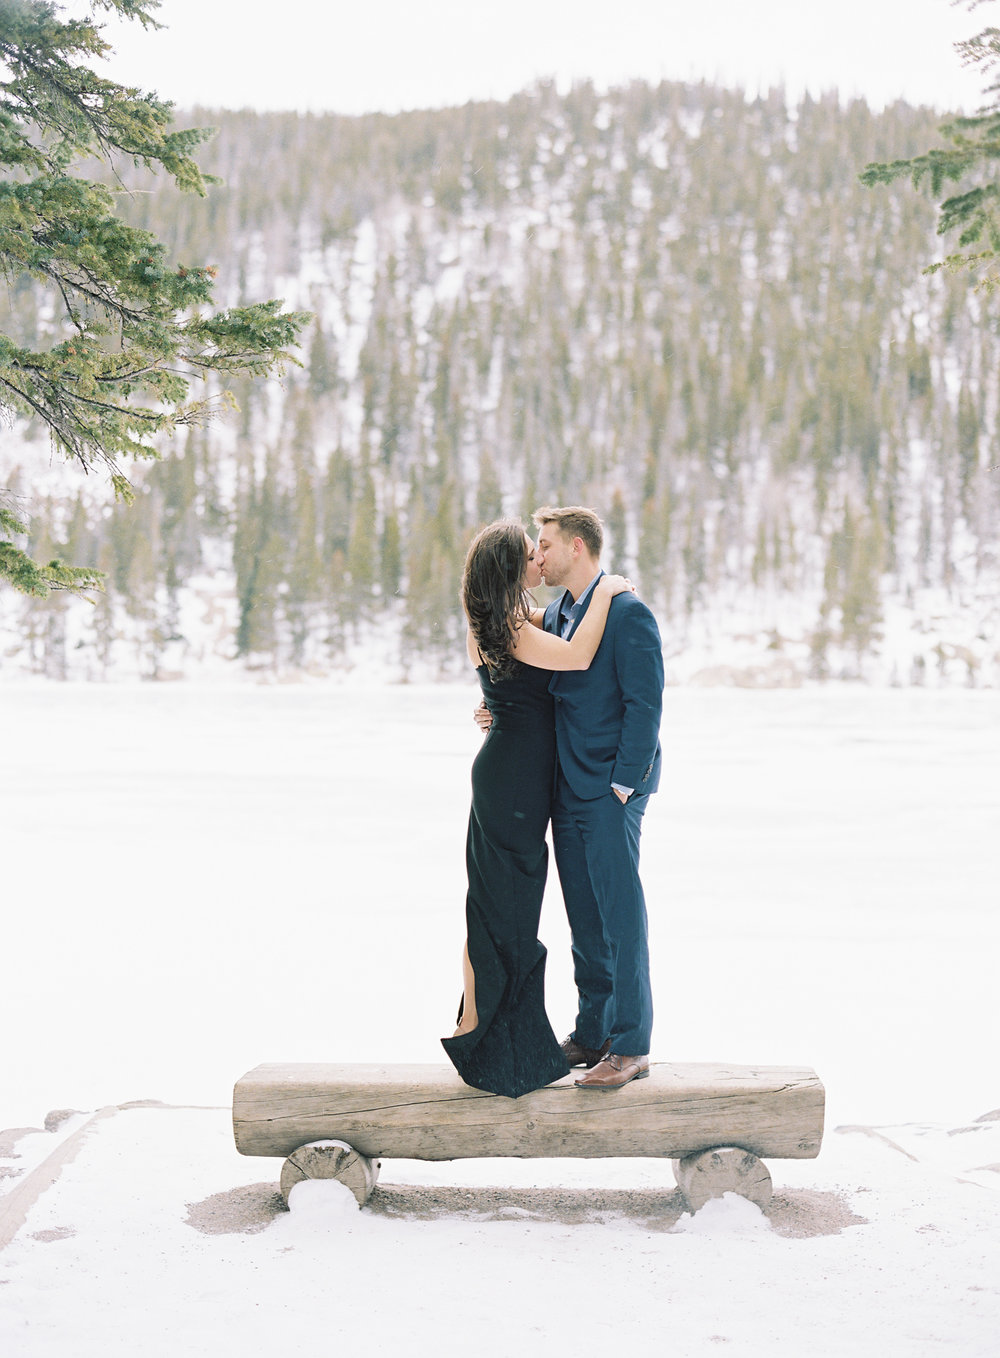 Paula & David-Colorado Engagement-018.jpg